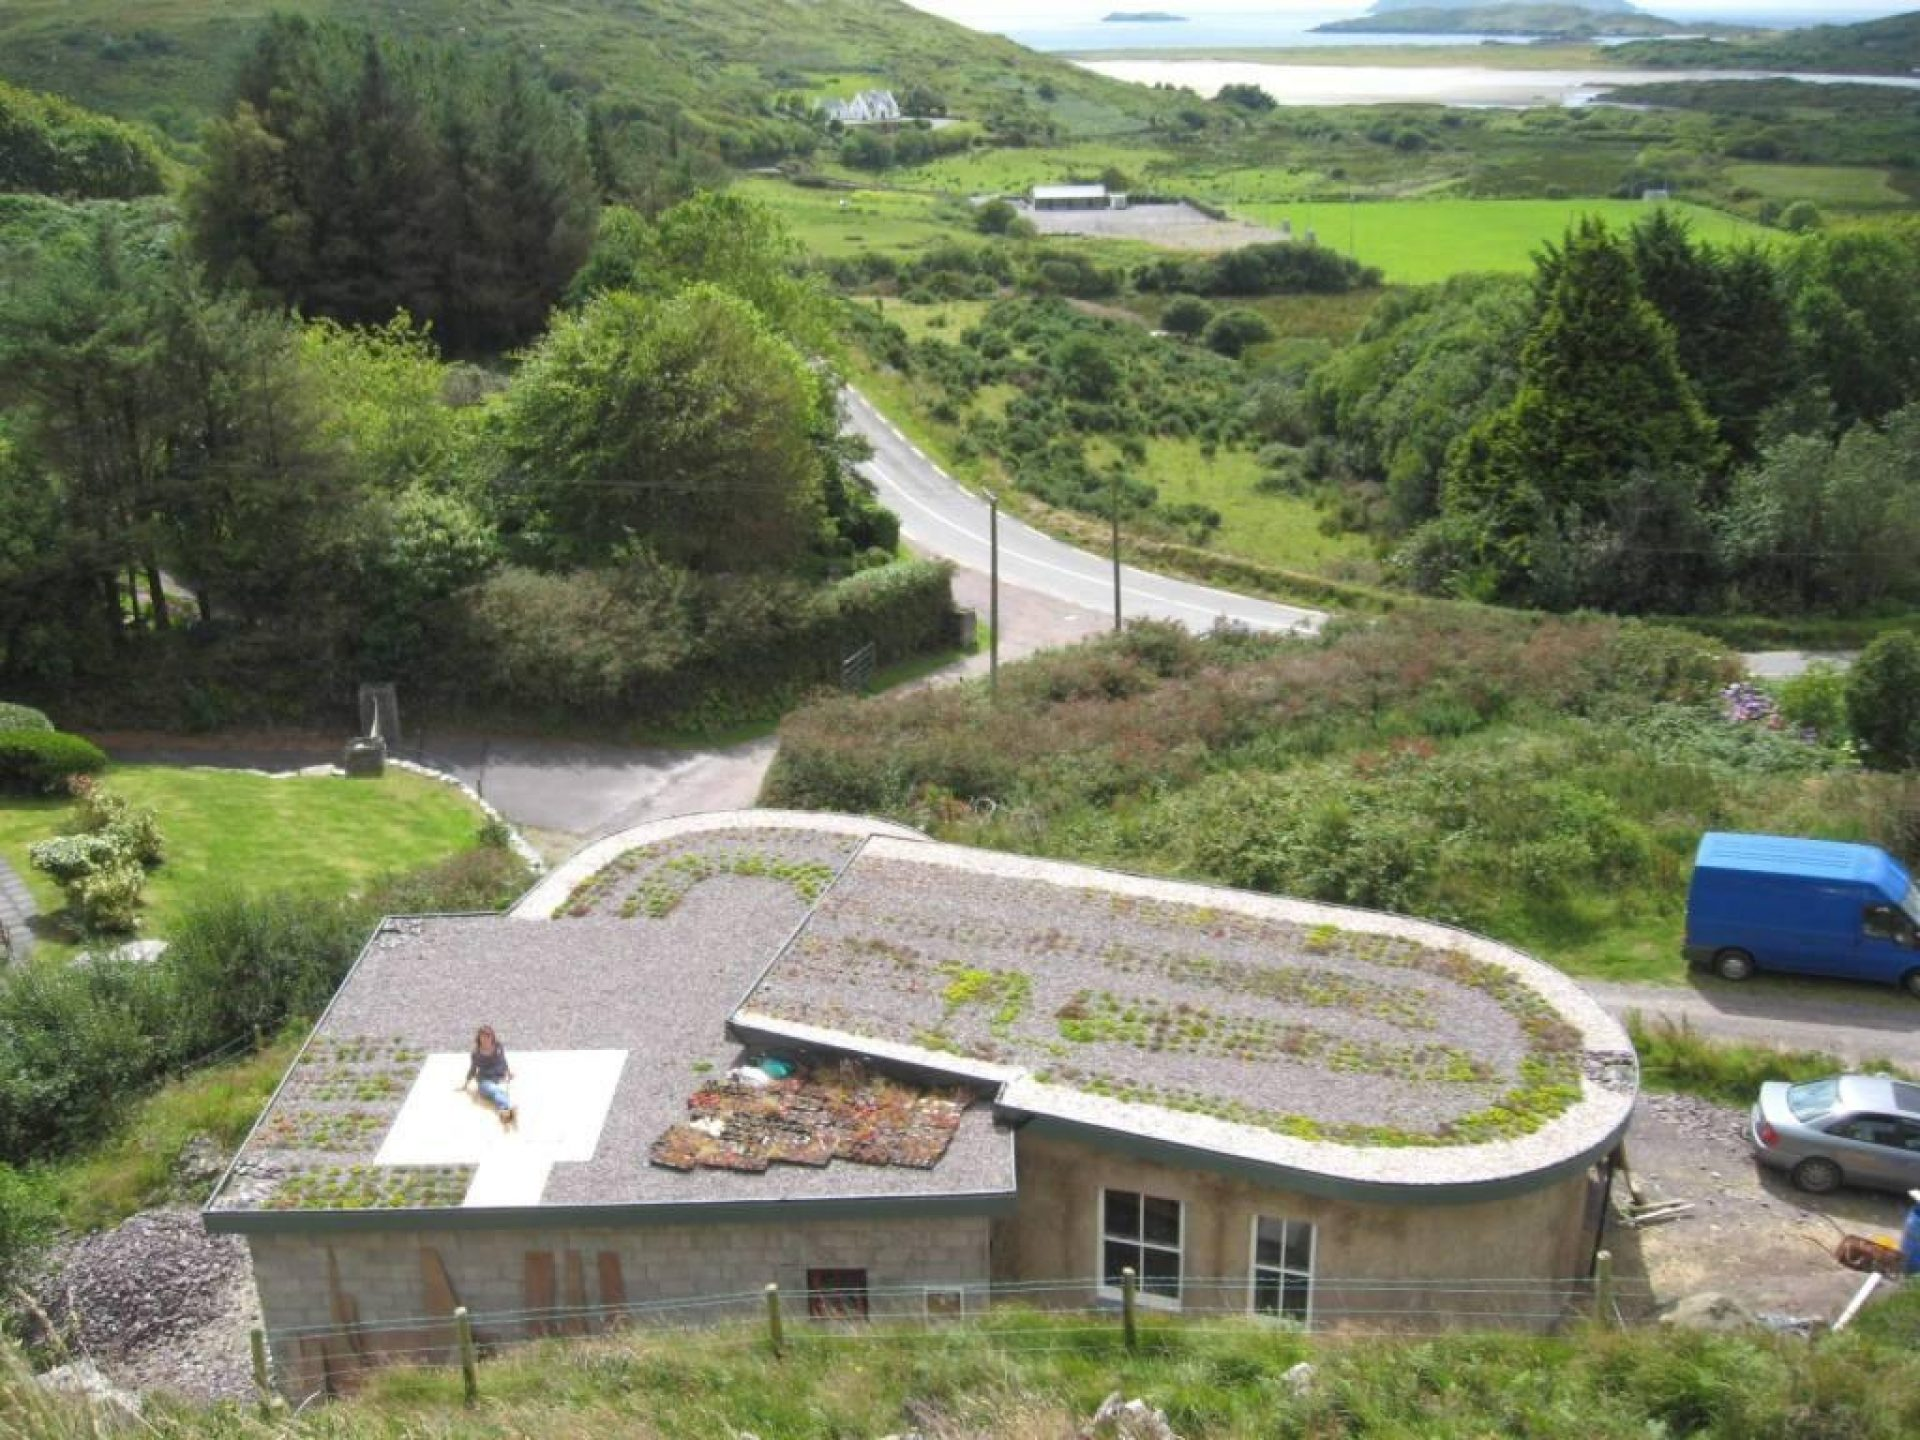 Michael O'Connor Civil Engineering Consultants - Longfield, Firies, Killarney, Co. Kerry Contact +(353) 6697 64910 and +353)86 8377804.  email moc@engineerkerry.com